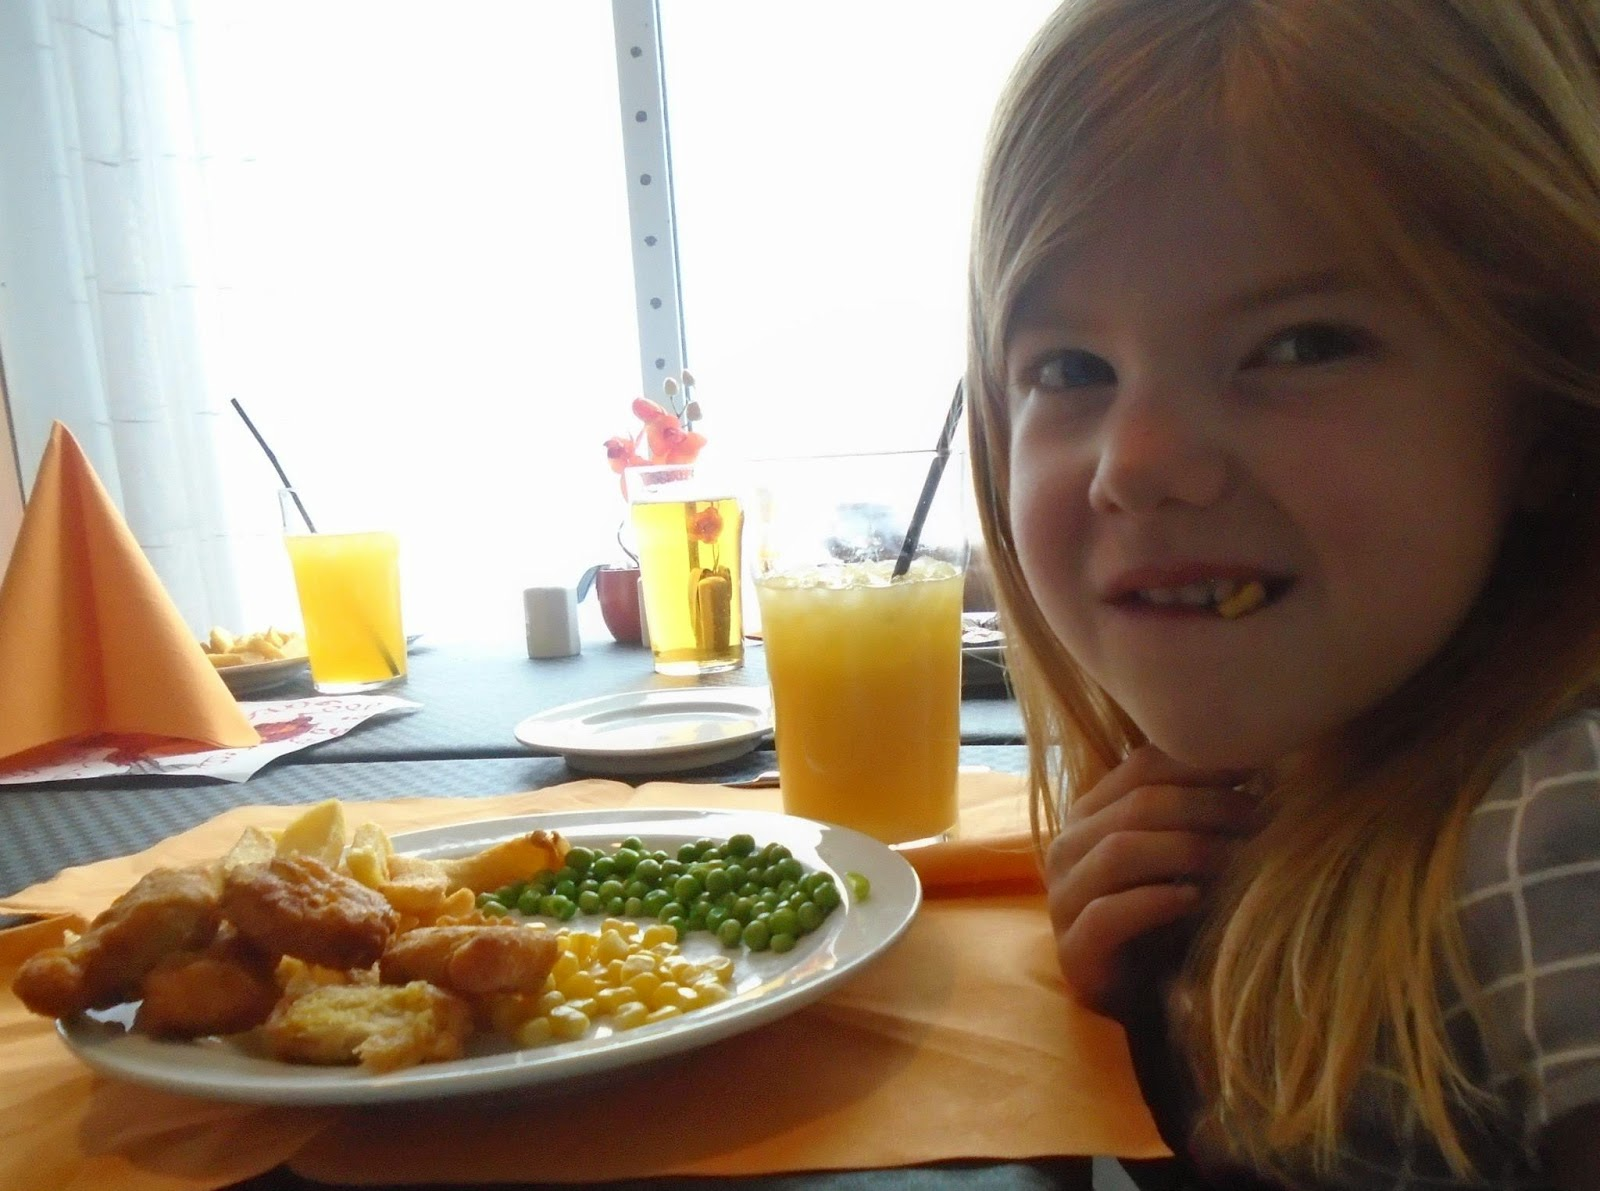 Children's meals aboard DFDS Seaways